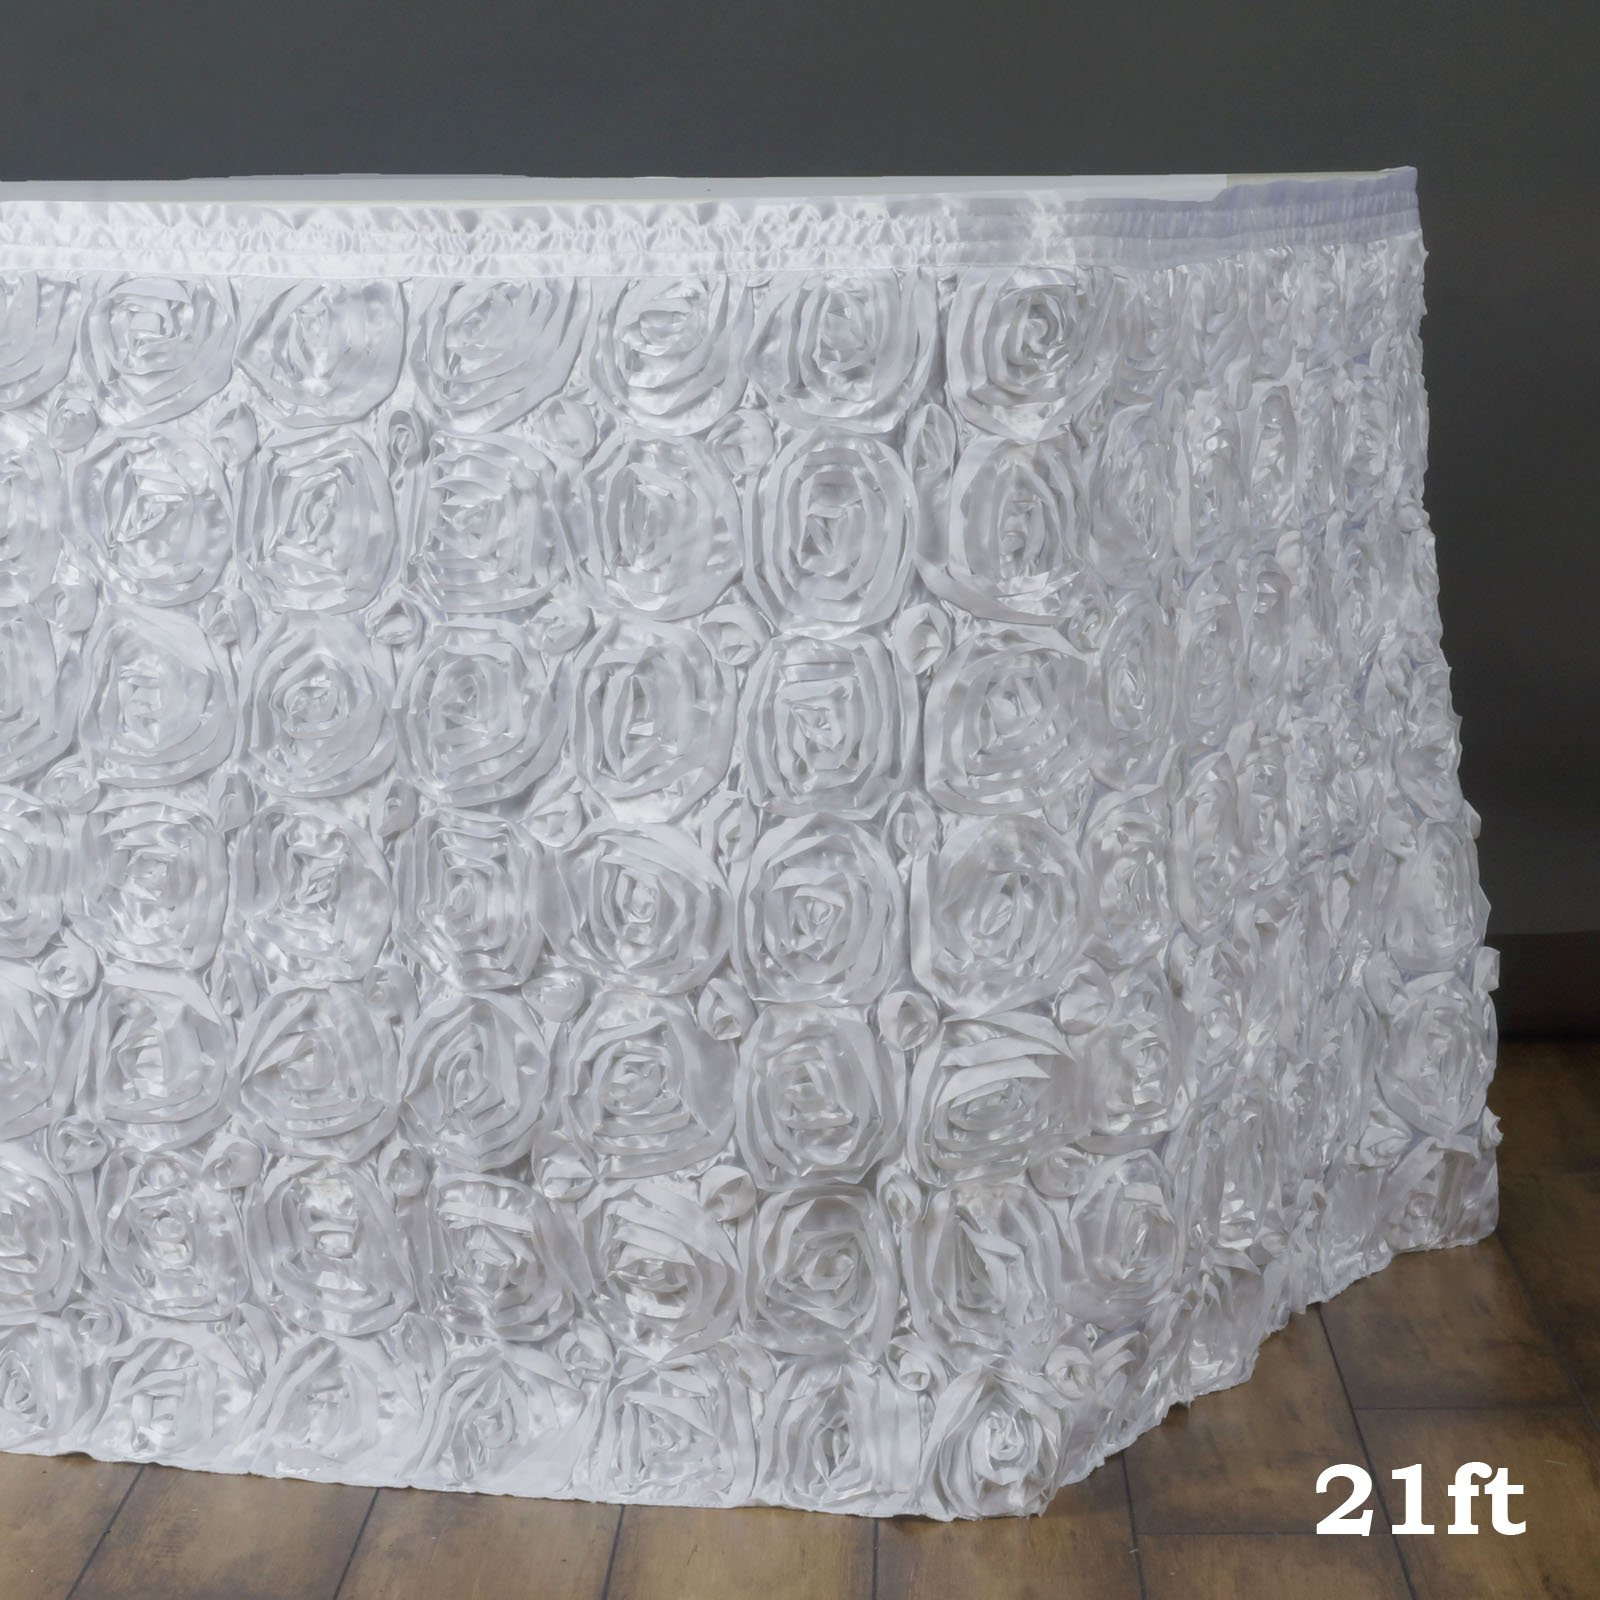 Efavormart Wonderland Rosette Table Skirt for Kitchen Dining Catering Wedding Birthday Party Decorations Events - White by Efavormart.com